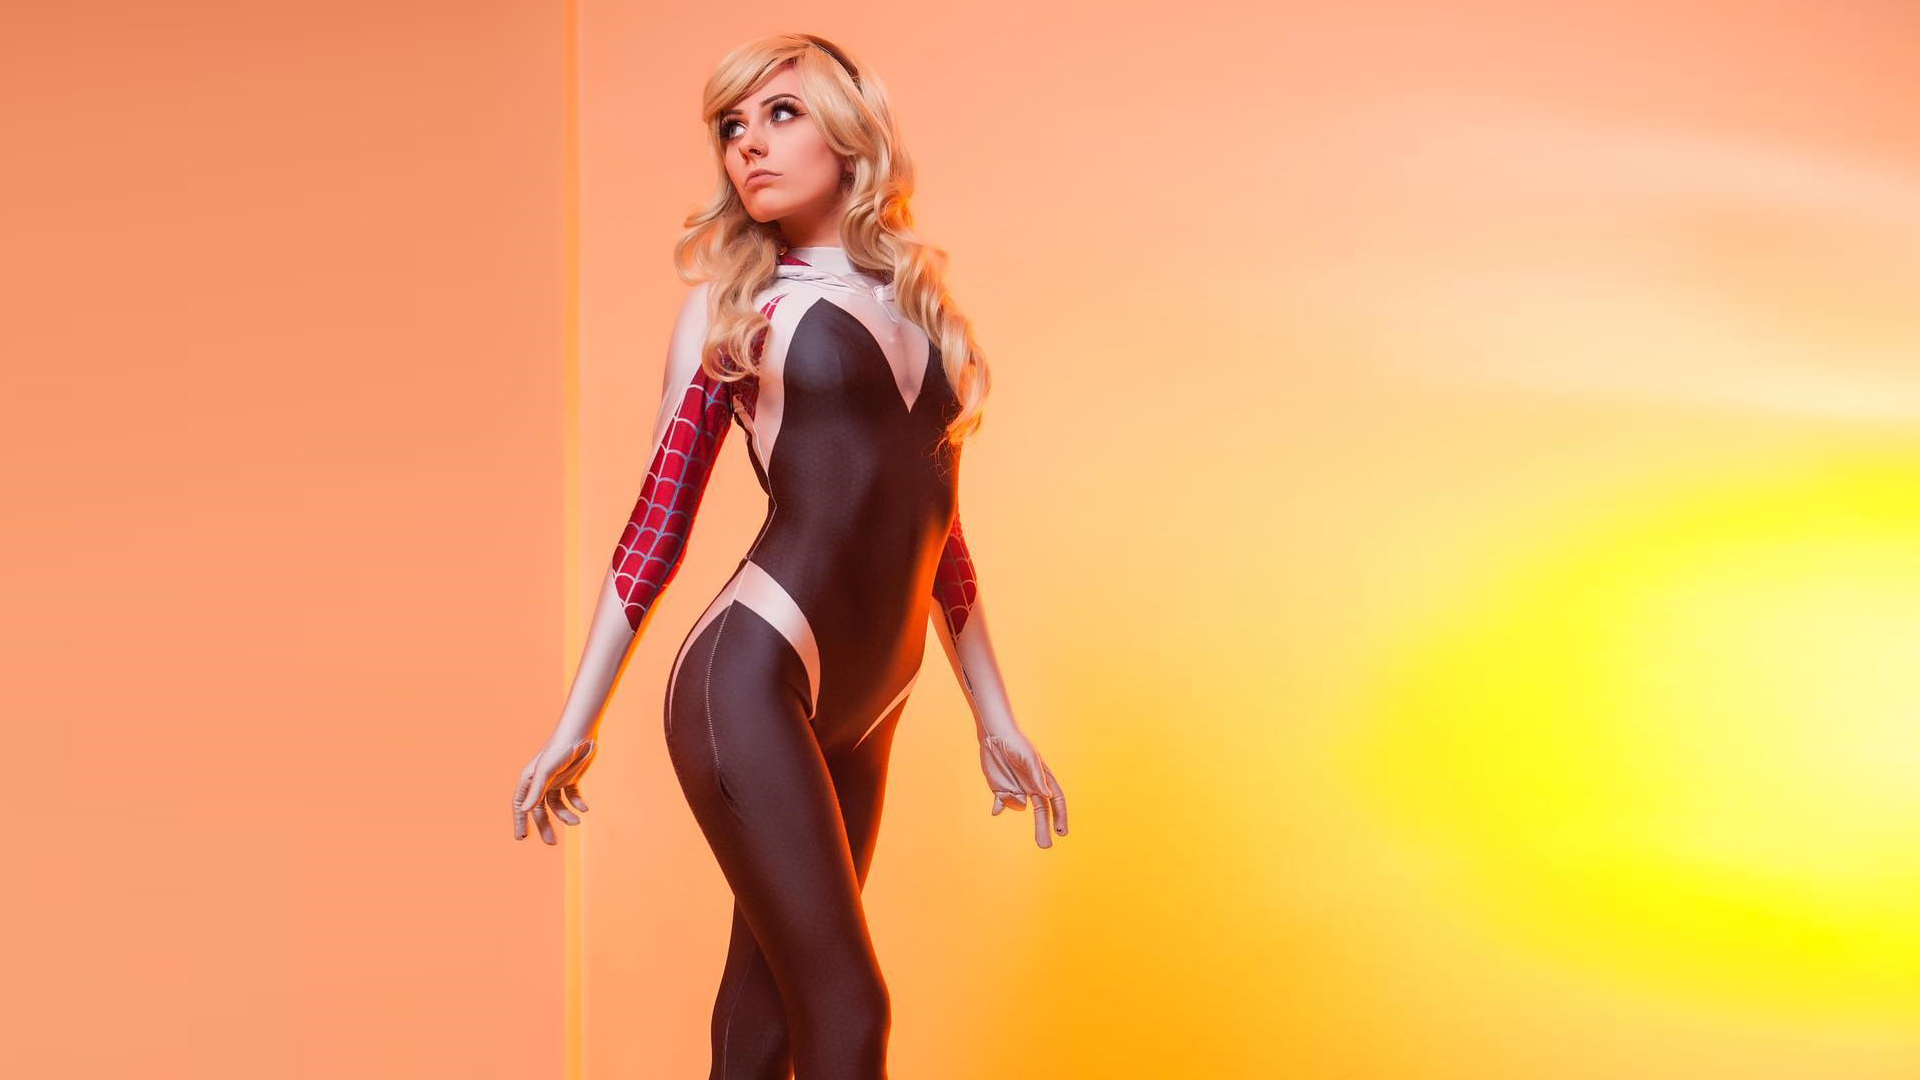 ... Hd Wallpapers, · Cosplay Wallpapers. Published On July 6, 2018 |  Original Resolution: ...